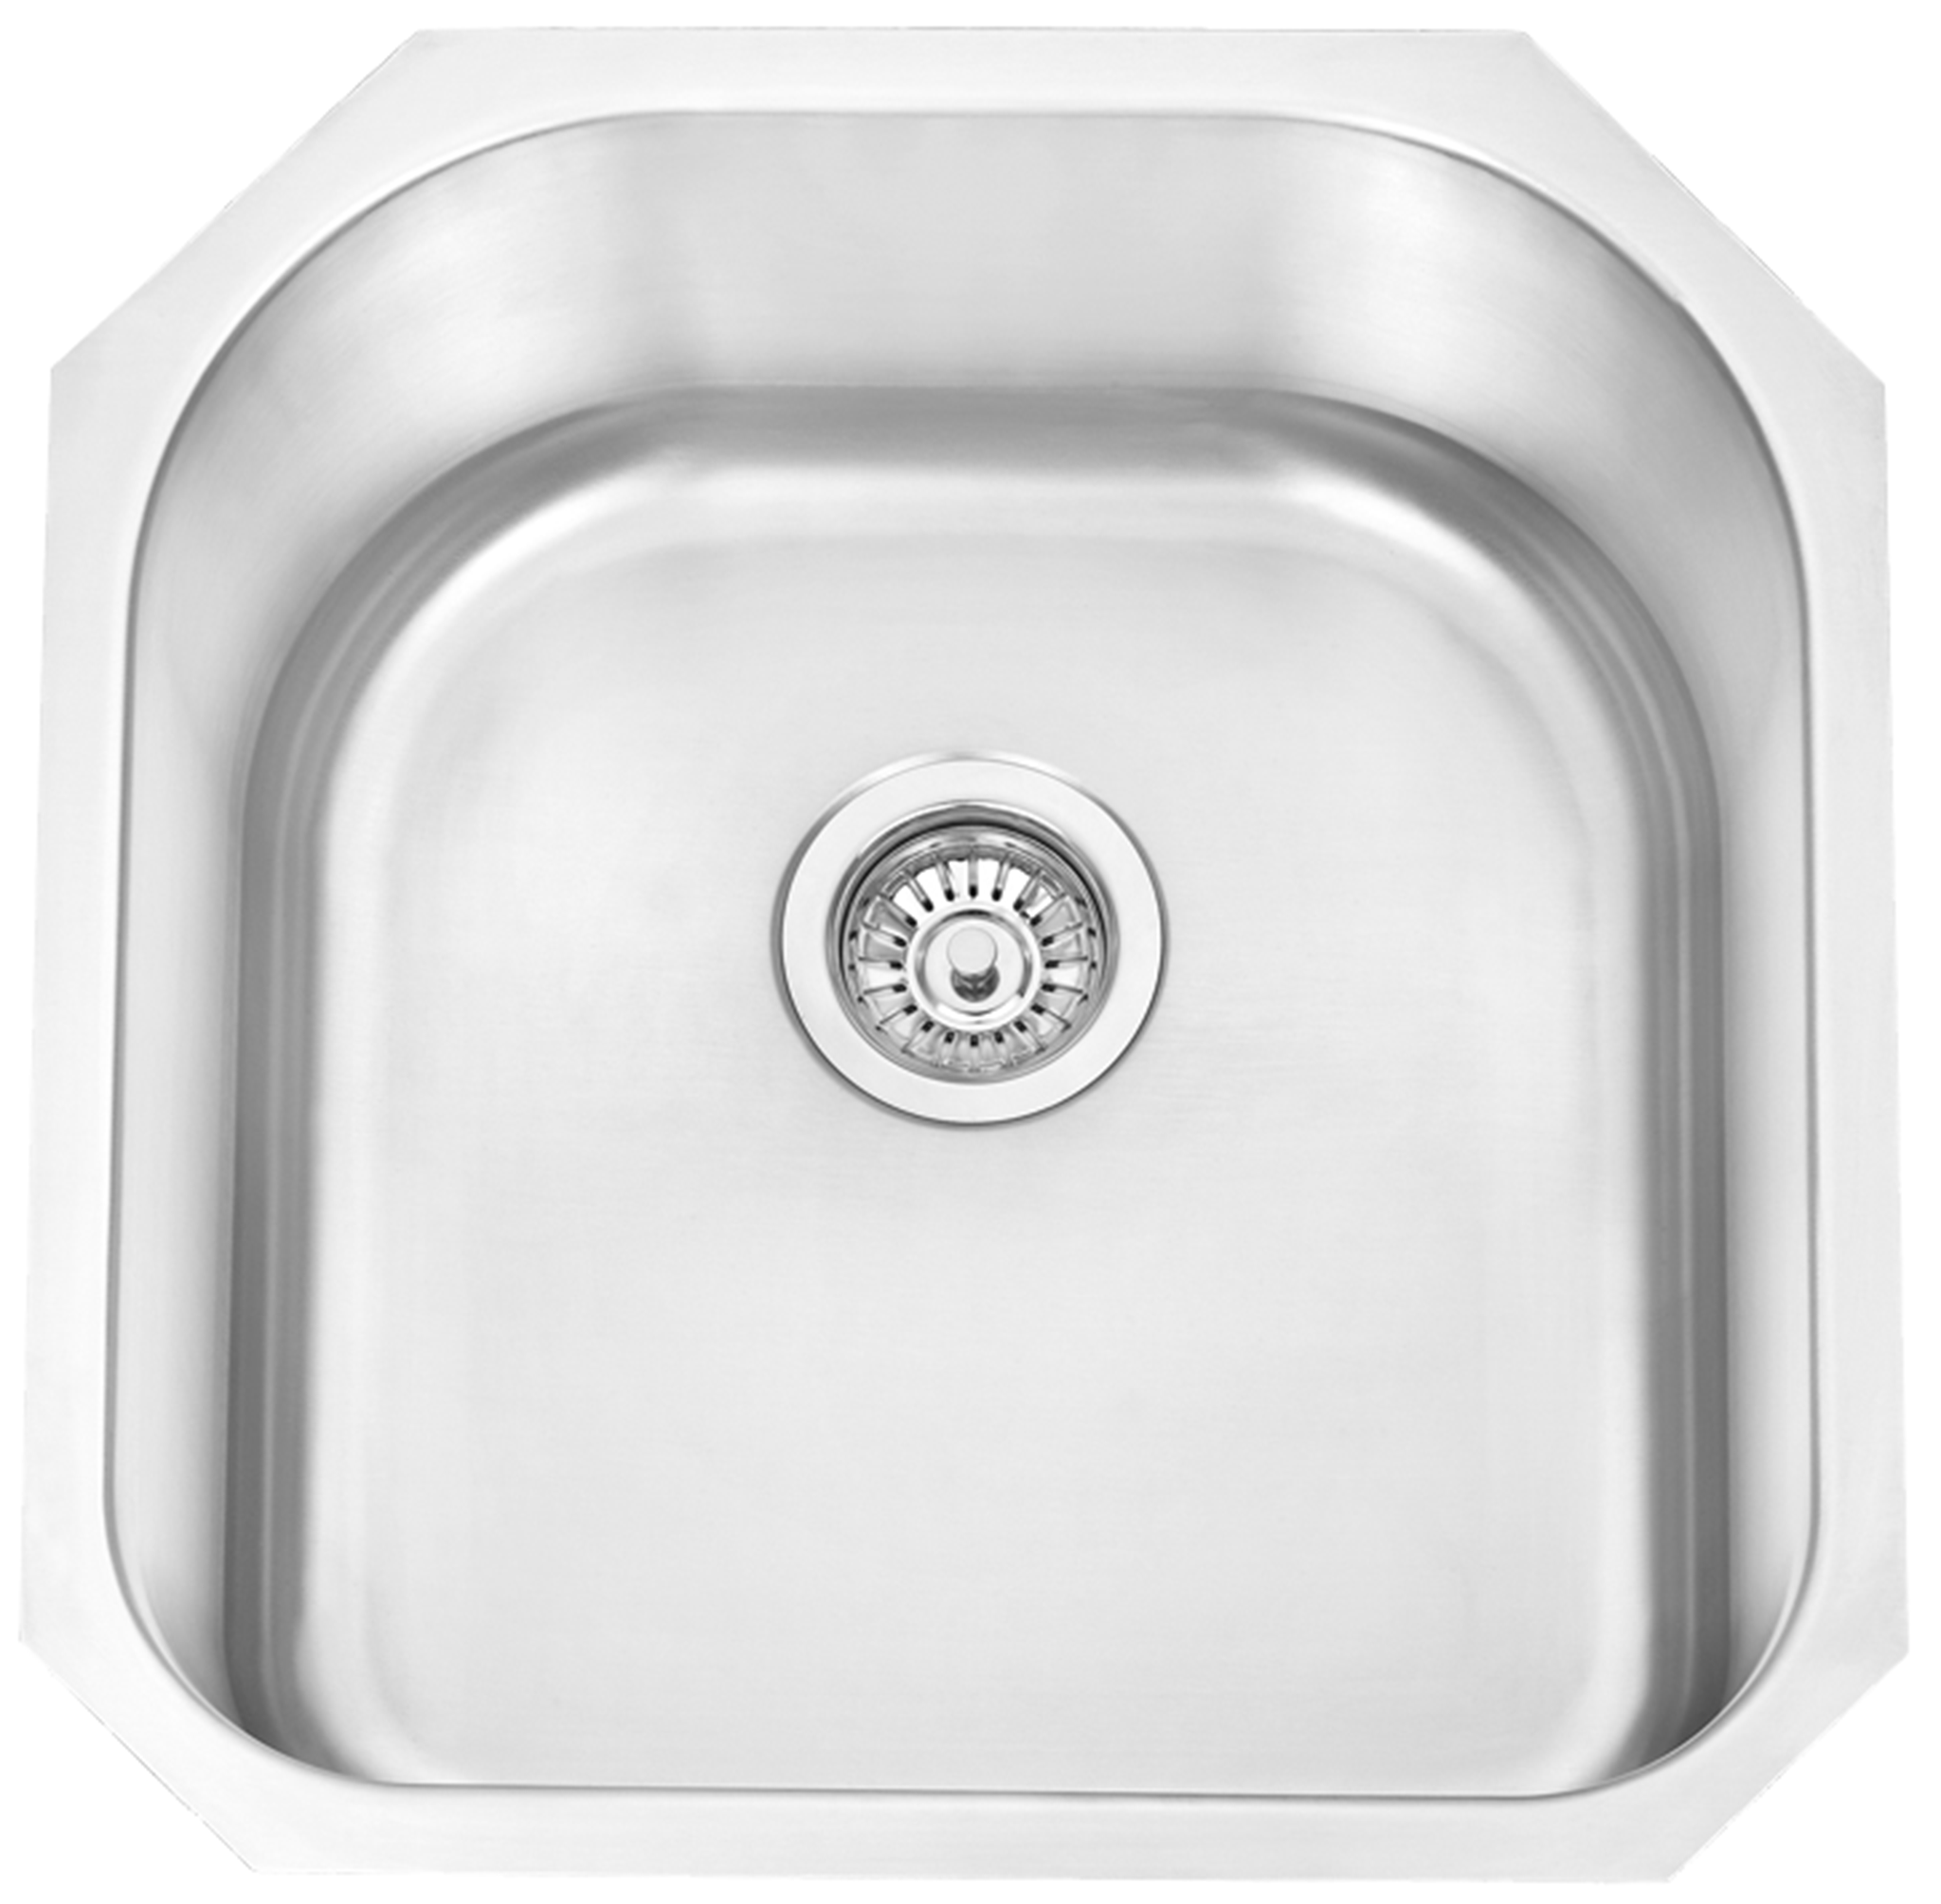 24218U   Single Bowl Undermount Stainless Steel Sink